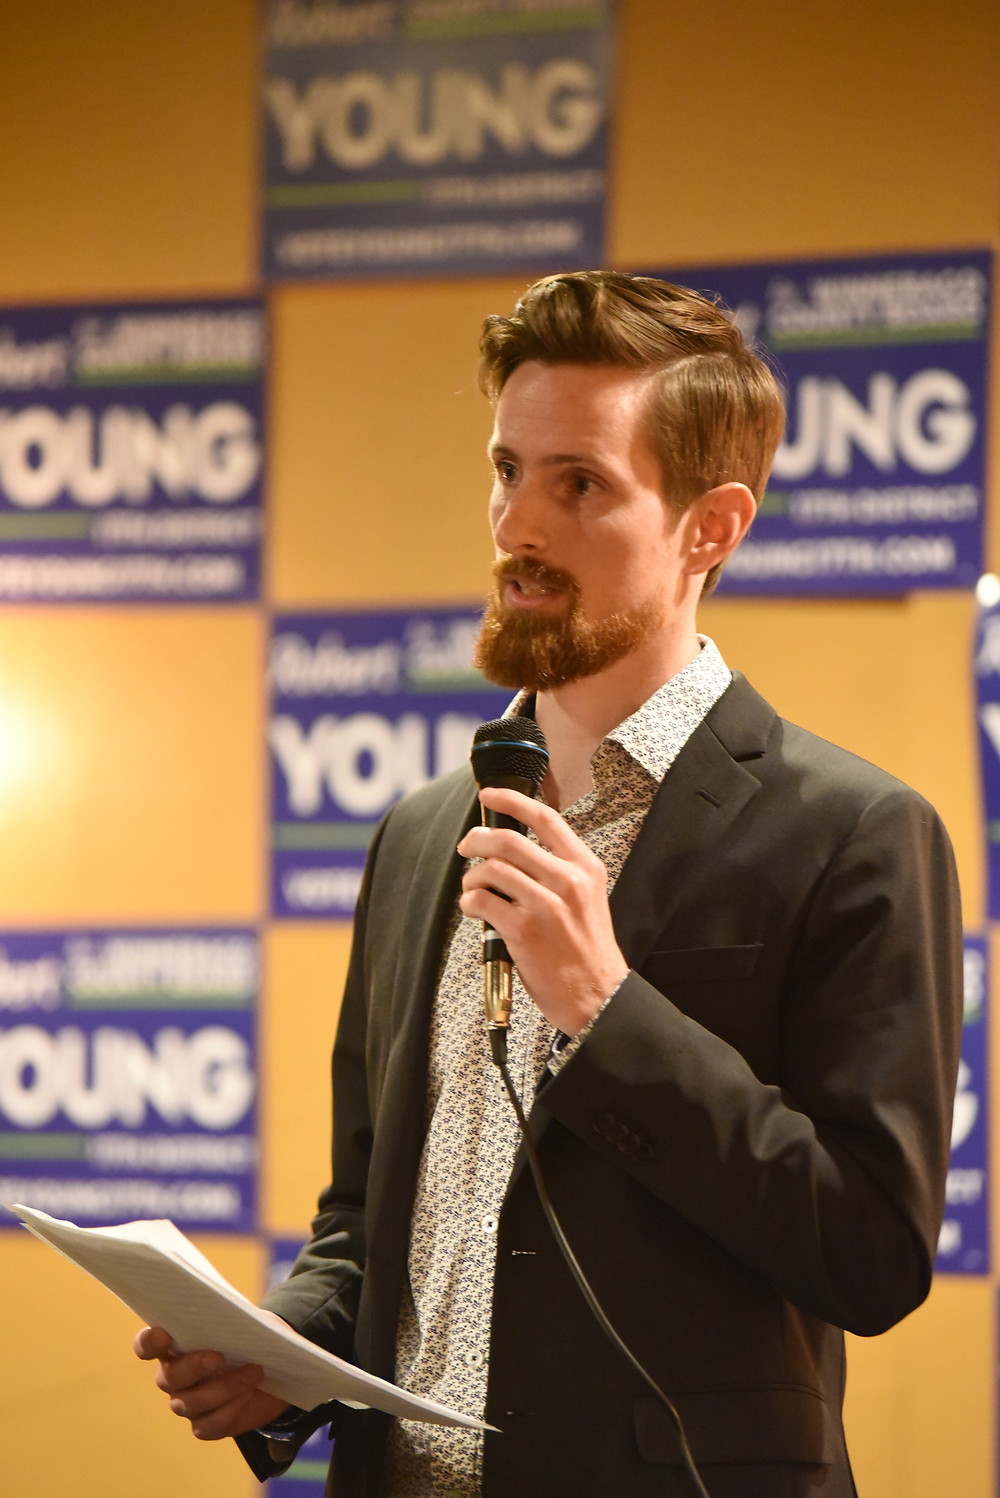 Robert Young, Candidate for Winnebago County Board